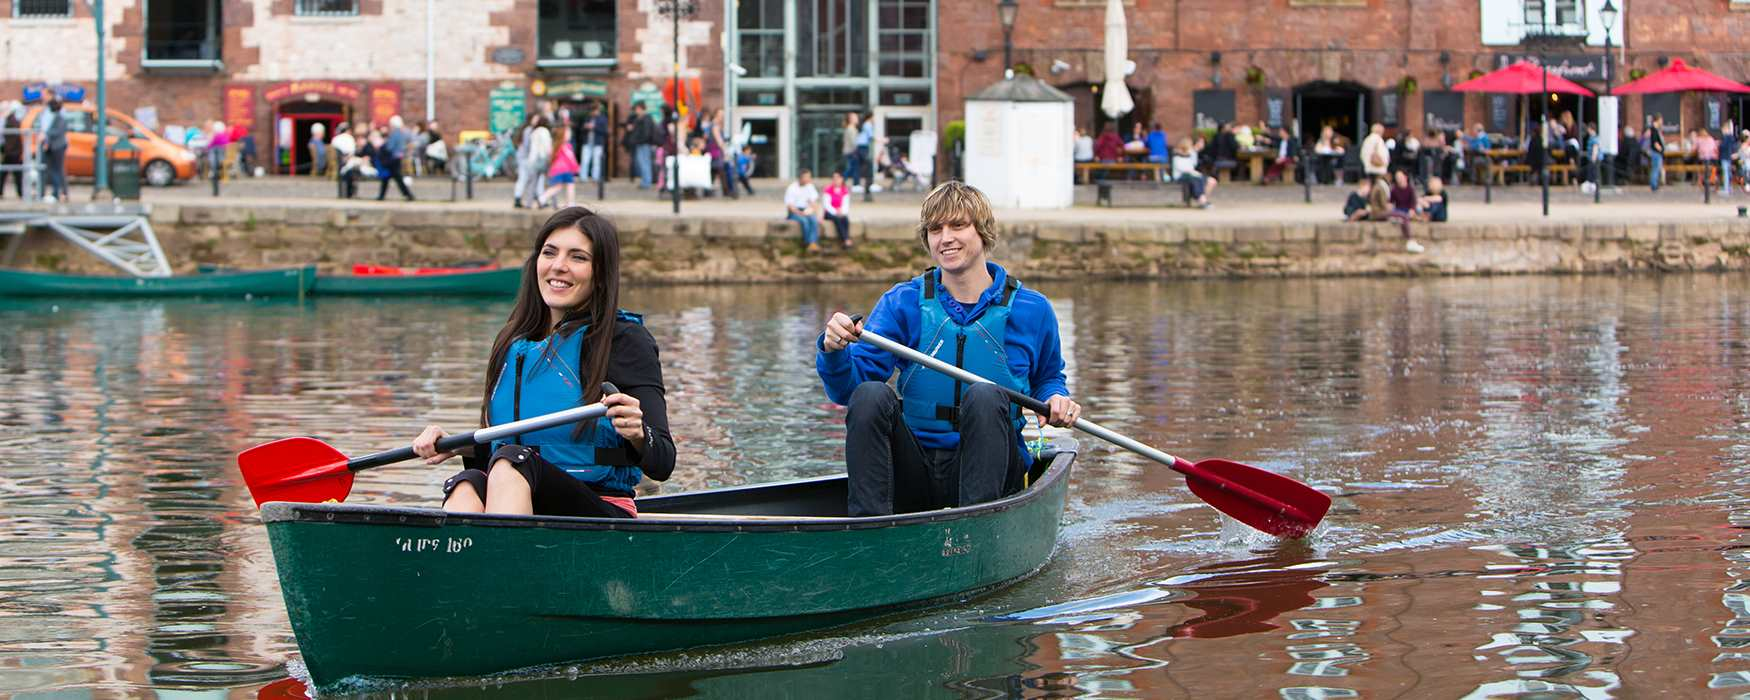 Get out on the water at Exeter's quayside